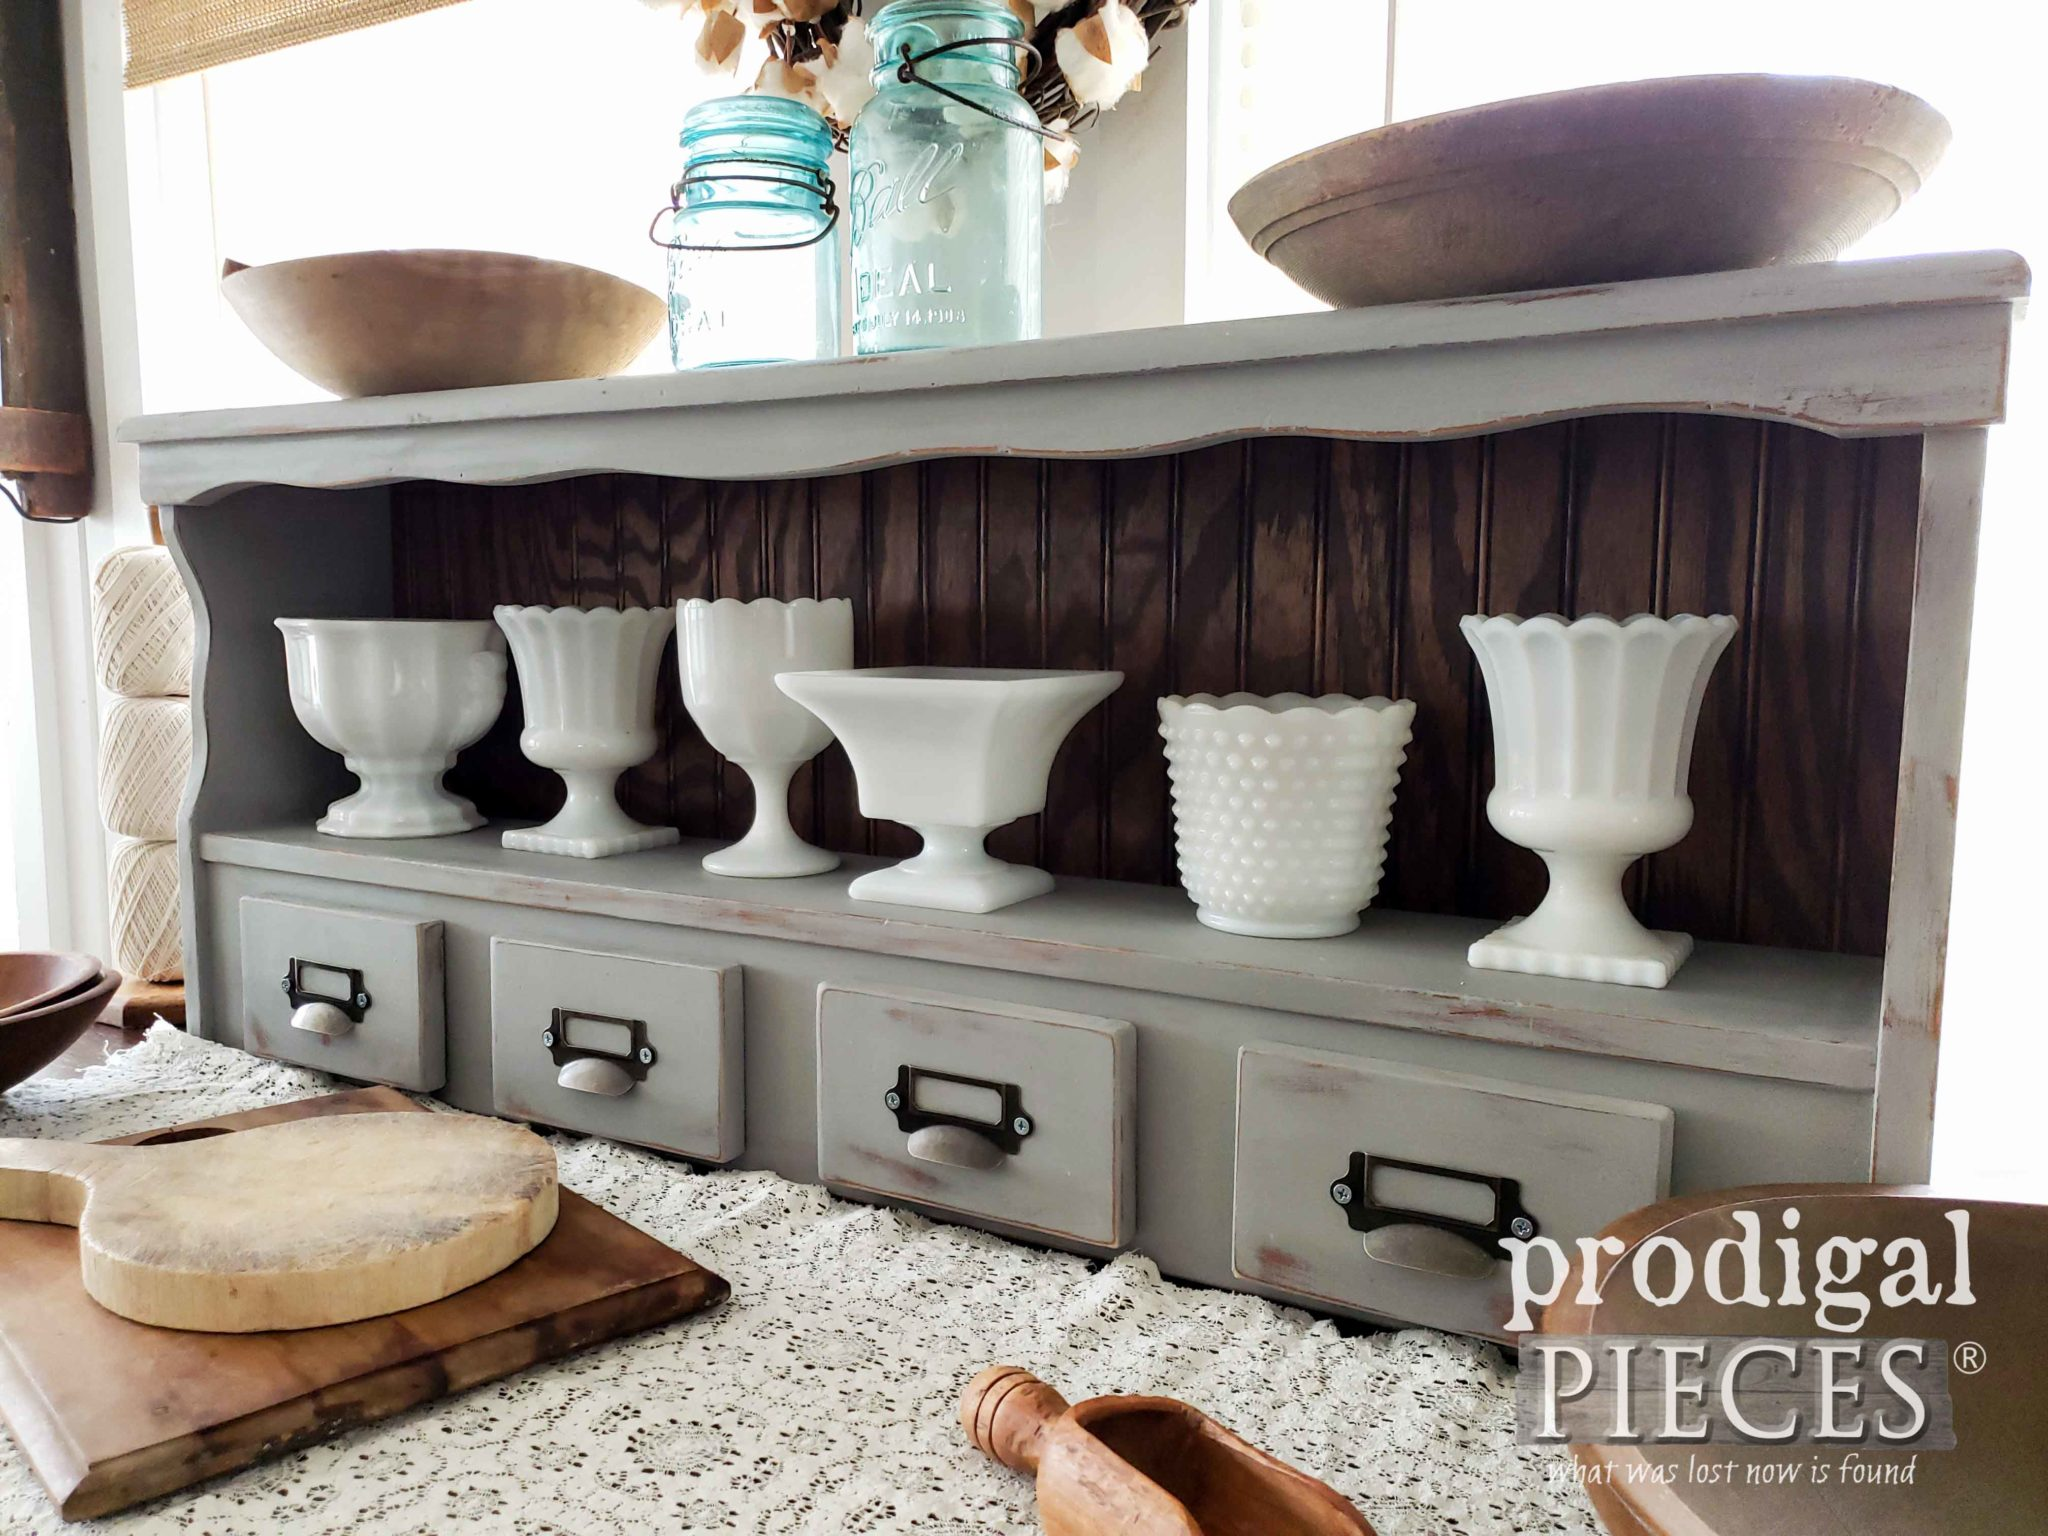 DIY Farmhouse Hutch made from Upcycled Bookcase Headboard | DIY tutorial by Larissa of Prodigal Pieces | prodigalpieces.com #prodigalpieces #farmhouse #homedecor #vintage #home #diy #furniture